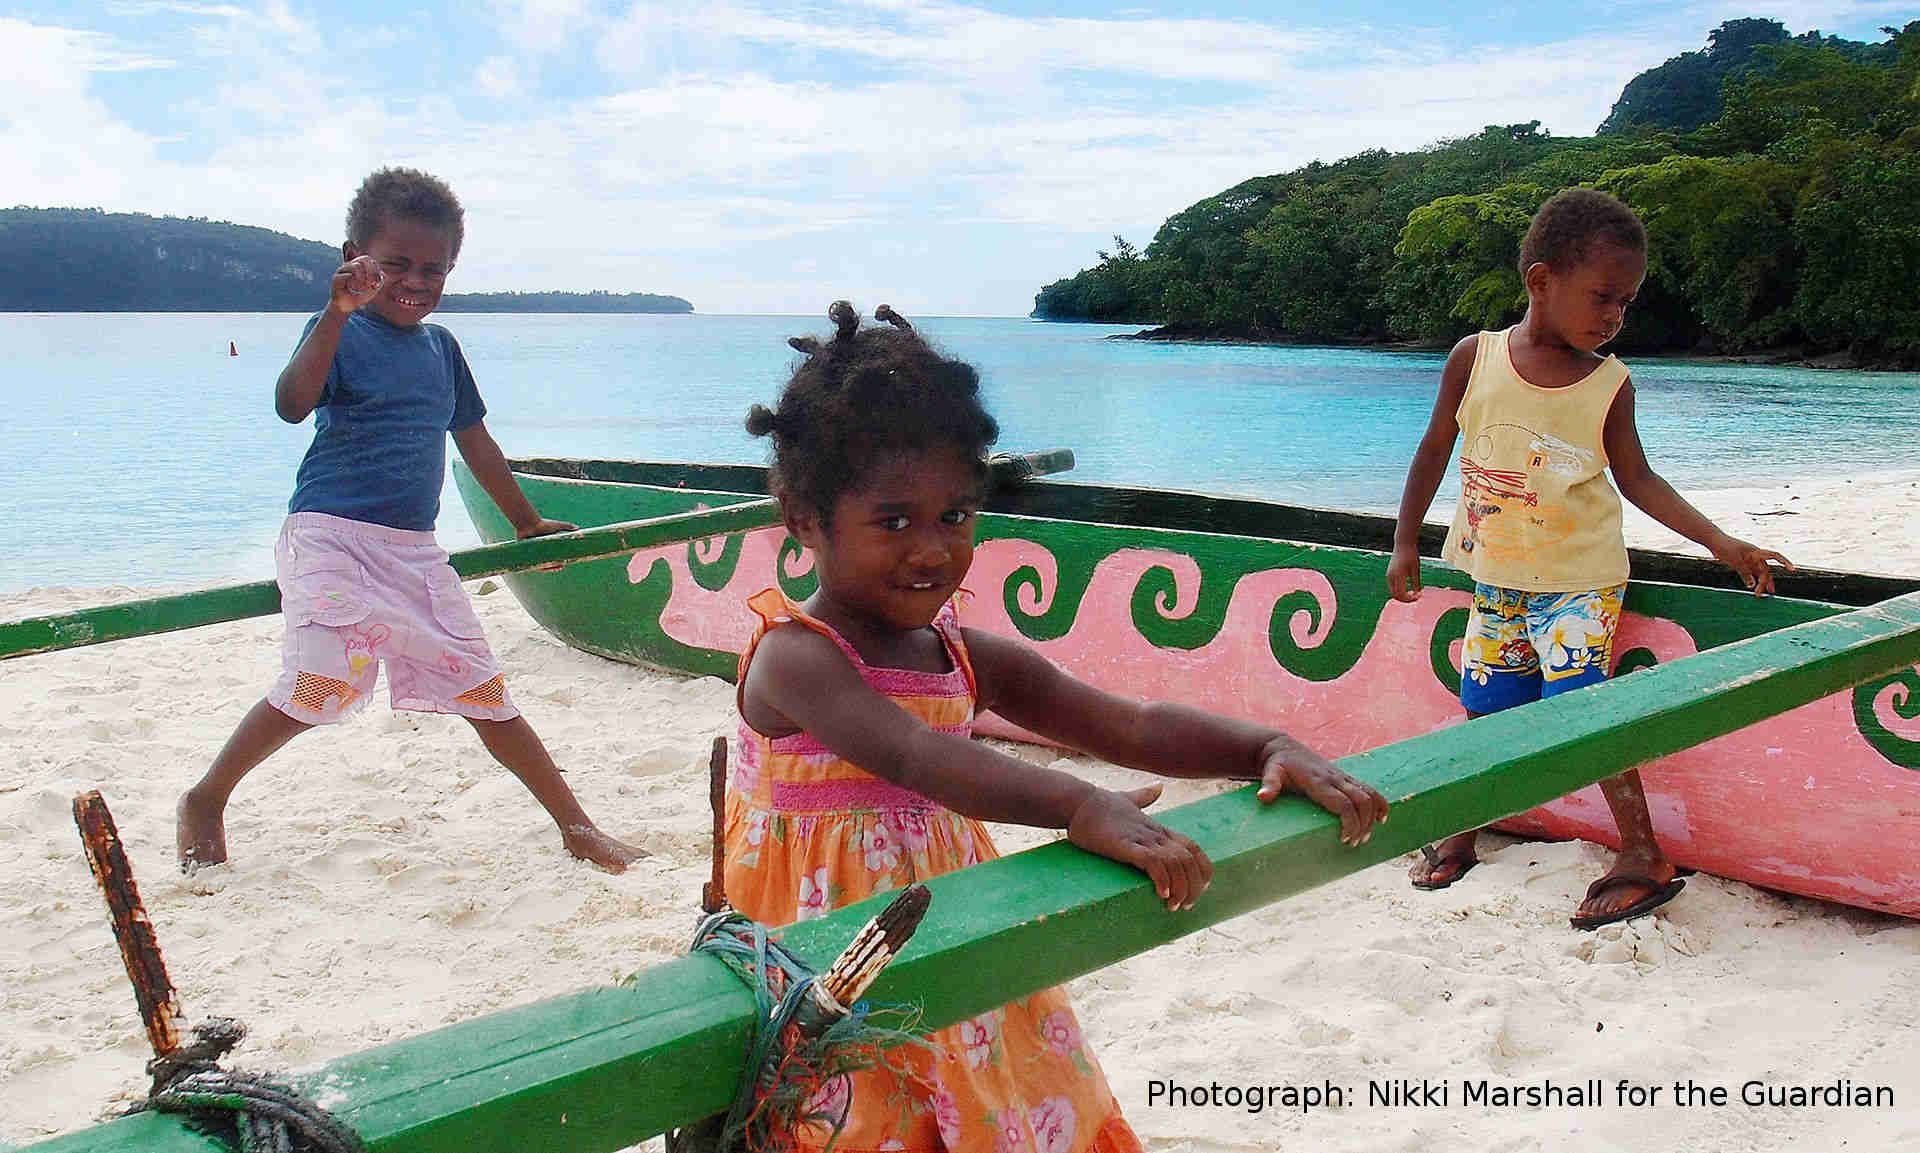 DNA shows first inhabitants of Vanuatu came from Philippines and Taiwan